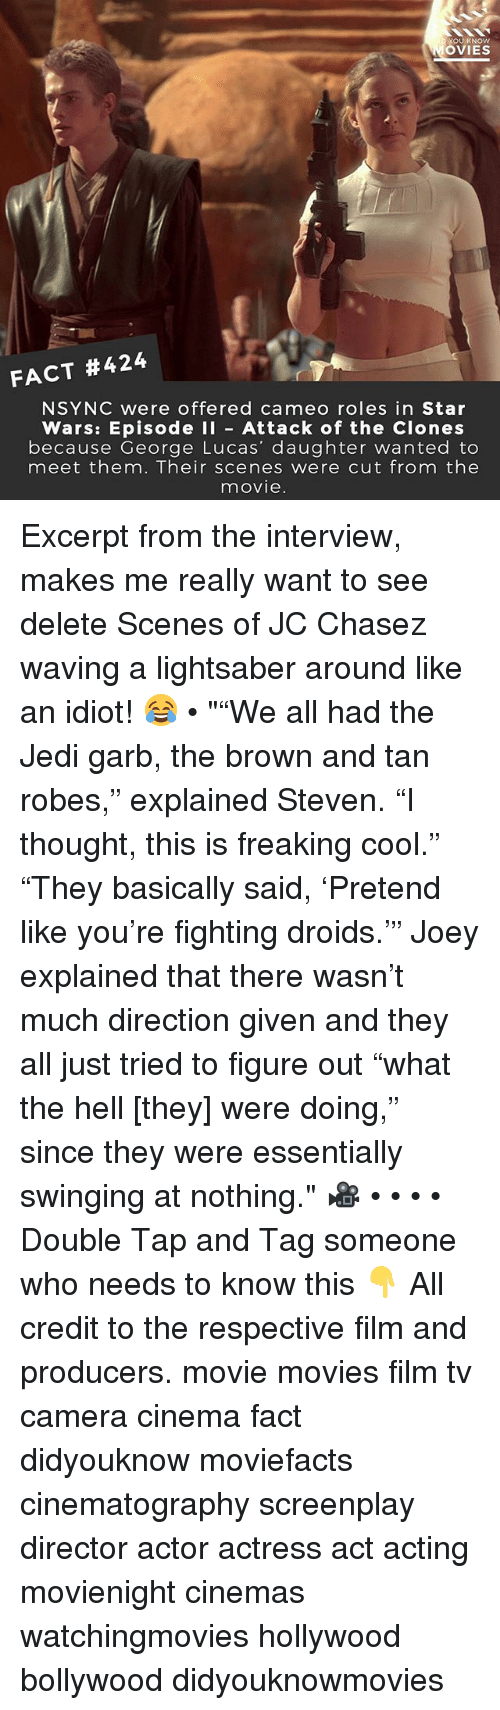 "browning: OU KNOW  OVIES  FACT #424  NSYNC were offered cameo roles in Star  Wars: Episode I Attack of the Clones  because George Lucas' daughter wanted to  meet them. Their scenes were cut from the  movie Excerpt from the interview, makes me really want to see delete Scenes of JC Chasez waving a lightsaber around like an idiot! 😂 • """"We all had the Jedi garb, the brown and tan robes,"" explained Steven. ""I thought, this is freaking cool."" ""They basically said, 'Pretend like you're fighting droids.'"" Joey explained that there wasn't much direction given and they all just tried to figure out ""what the hell [they] were doing,"" since they were essentially swinging at nothing."" 🎥 • • • • Double Tap and Tag someone who needs to know this 👇 All credit to the respective film and producers. movie movies film tv camera cinema fact didyouknow moviefacts cinematography screenplay director actor actress act acting movienight cinemas watchingmovies hollywood bollywood didyouknowmovies"